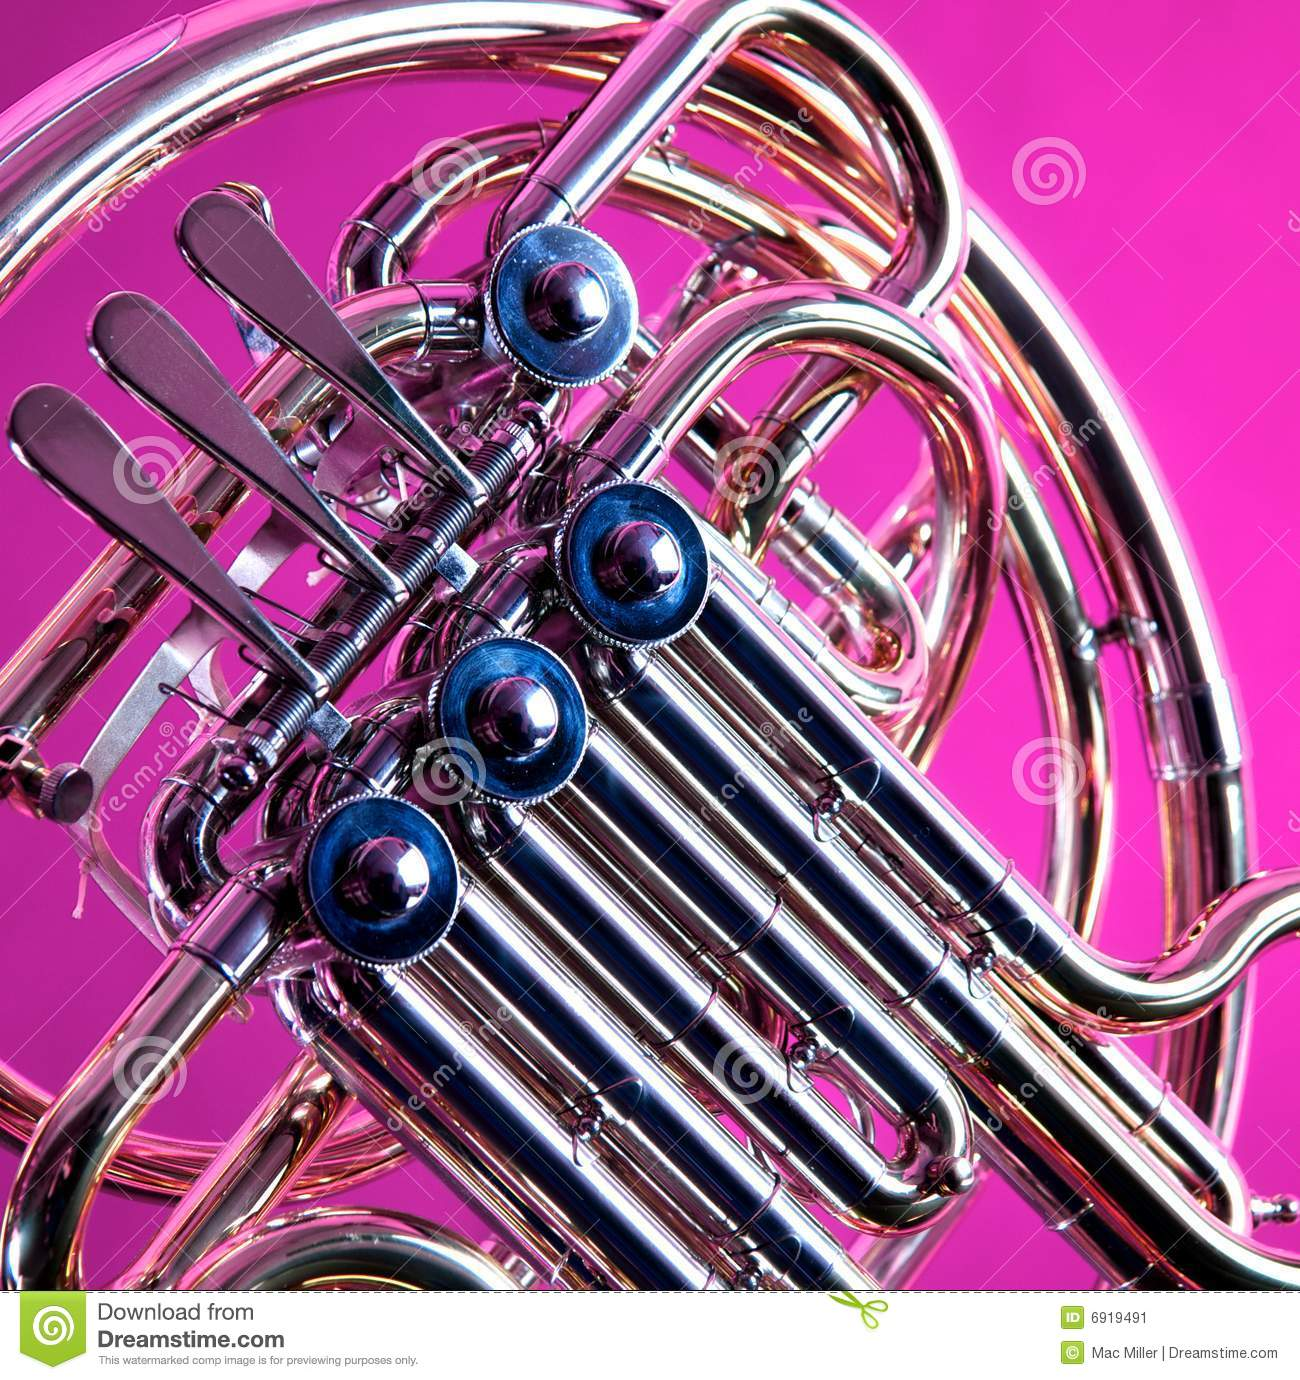 French Horn On Pink Background Stock Image - Image: 6919491